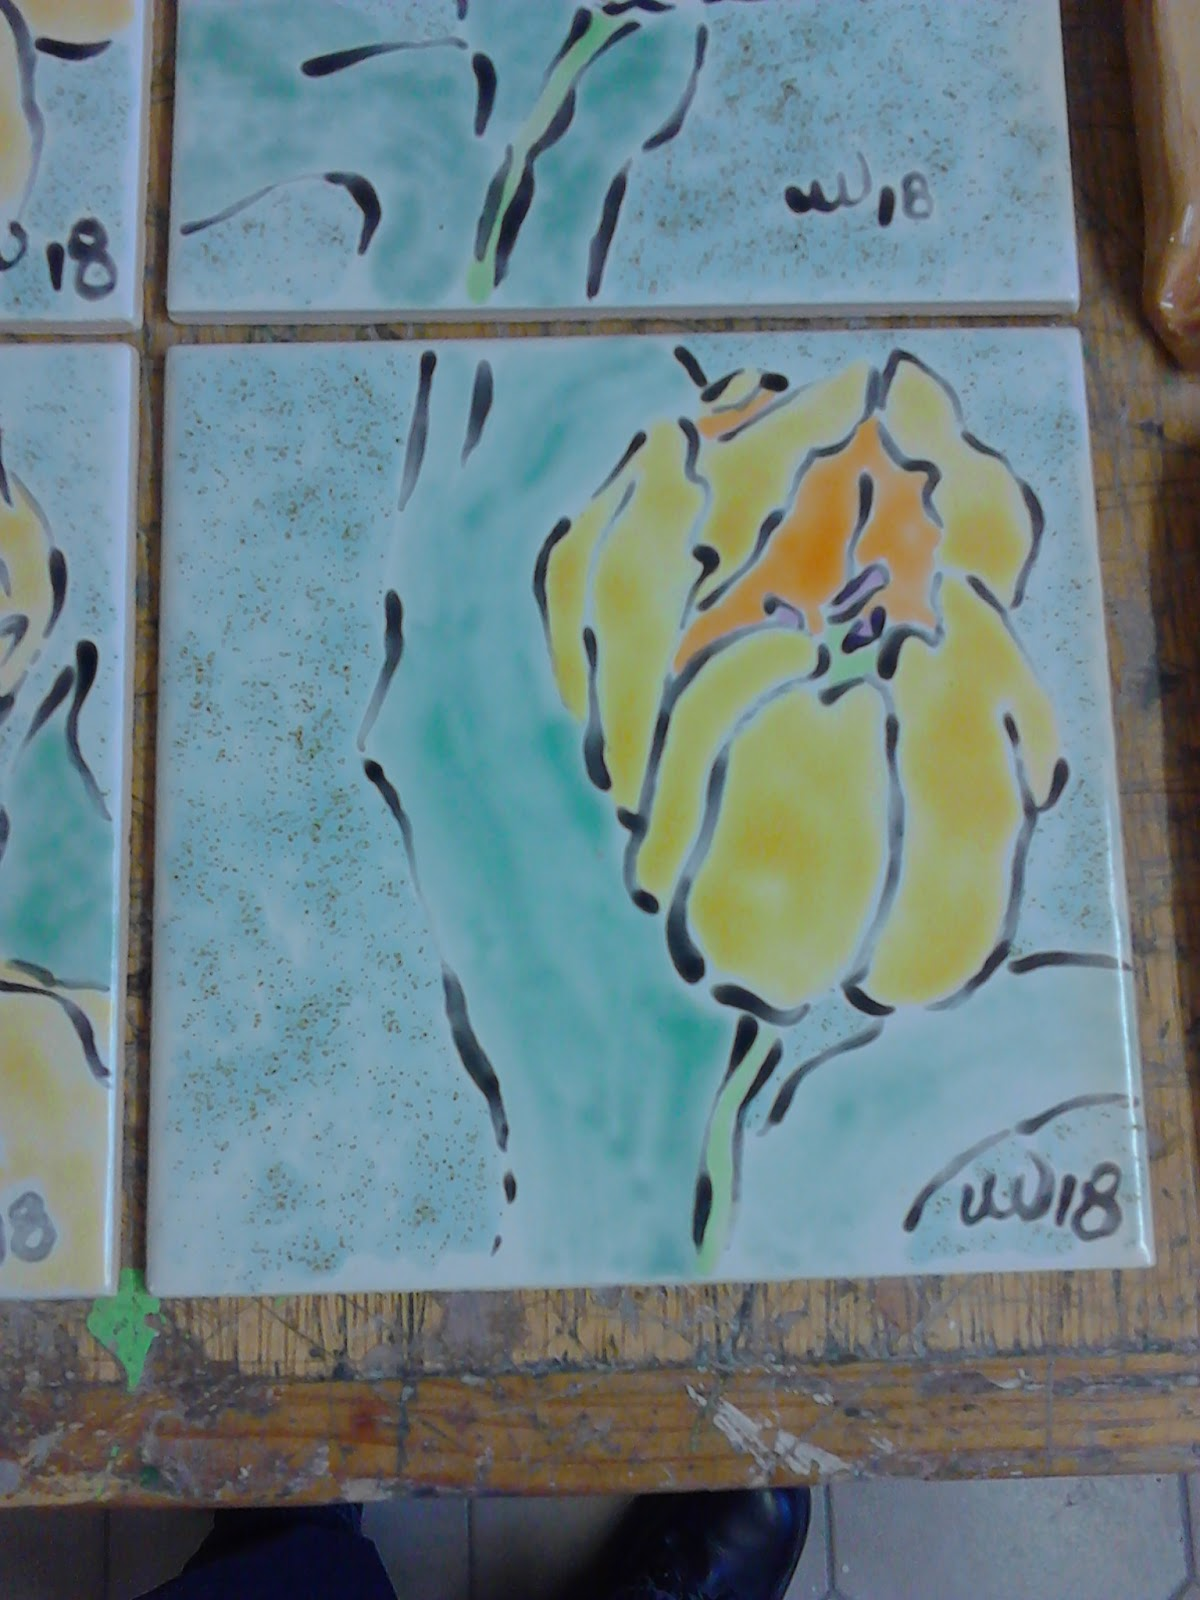 Culture, Craft & Cooking!: Hand-painted ceramic tiles